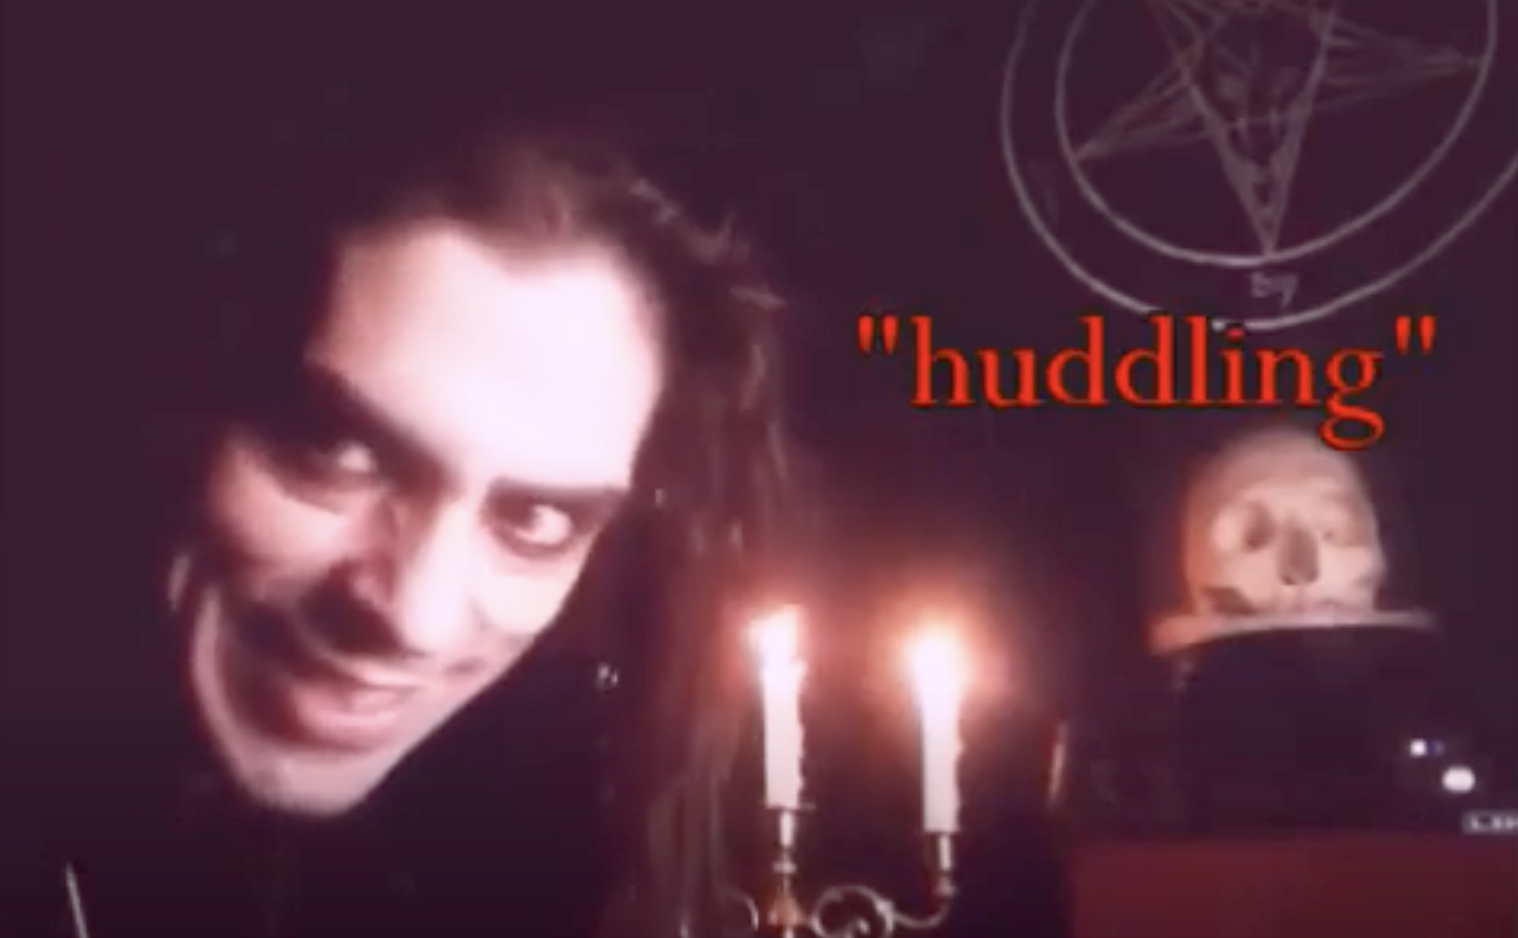 Reverend Count MoriVond reads from THE SATANIC SCRIPTURES